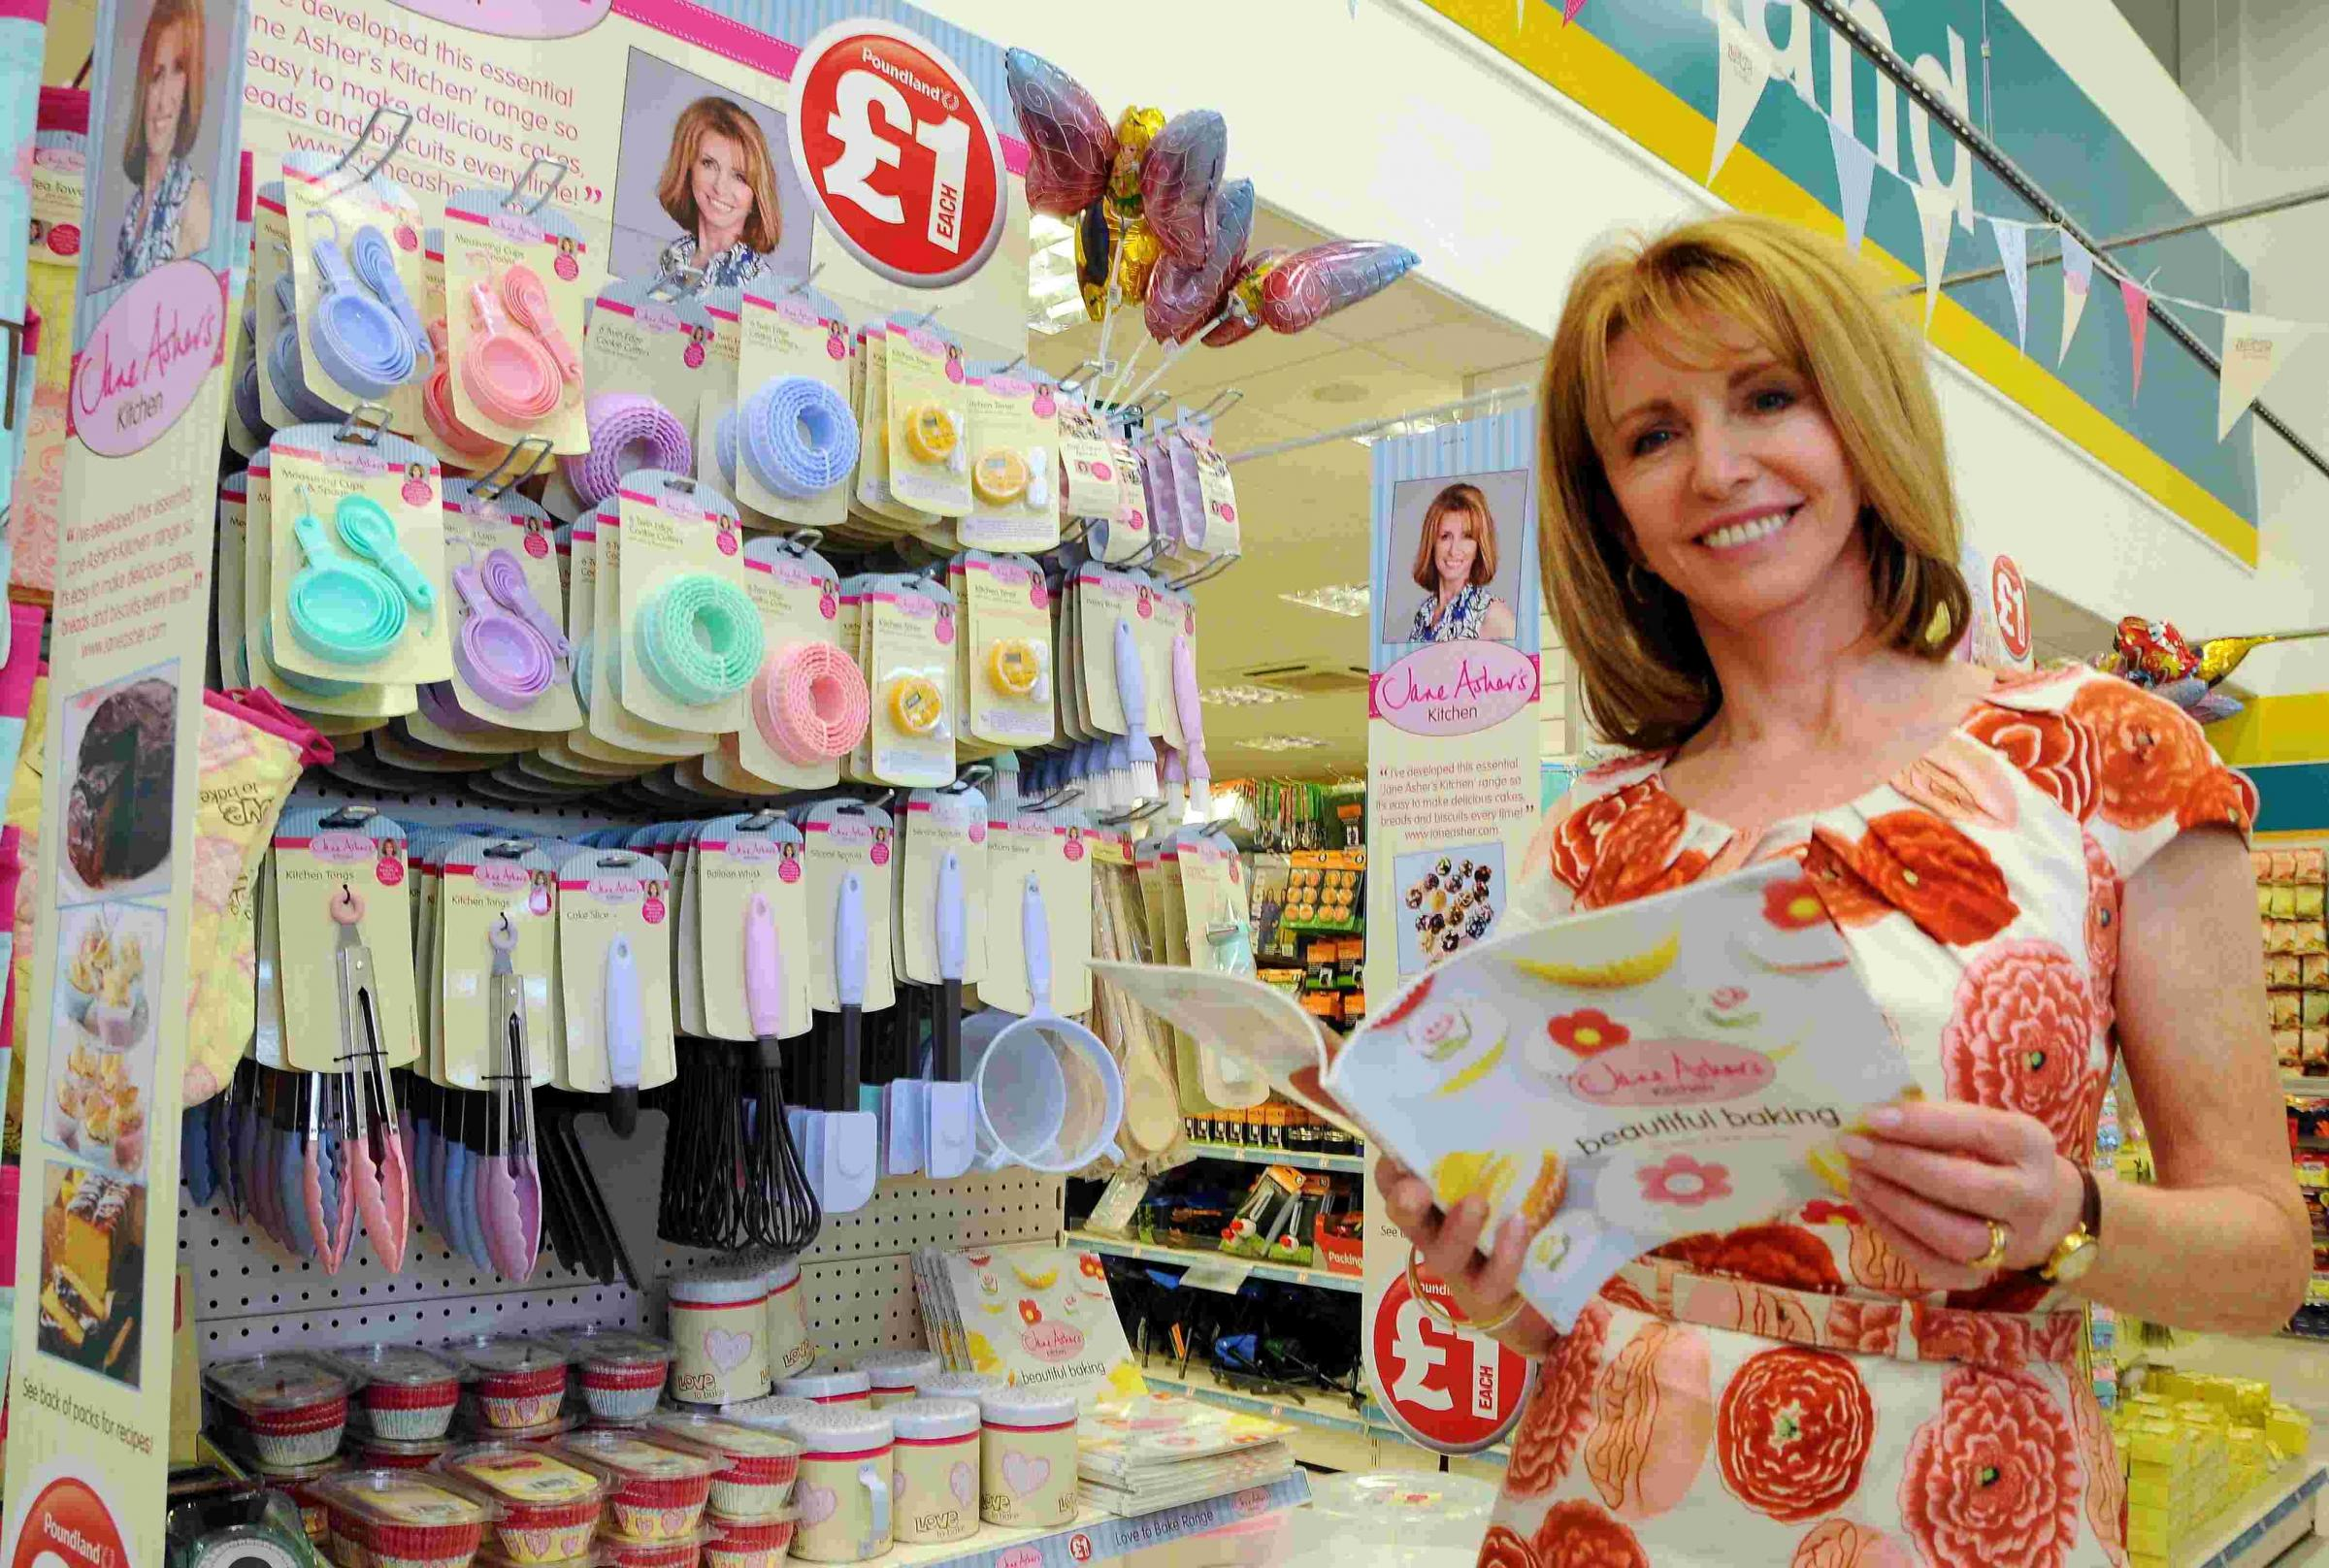 Jane Asher launched her bakeware range at Poundland in Chineham